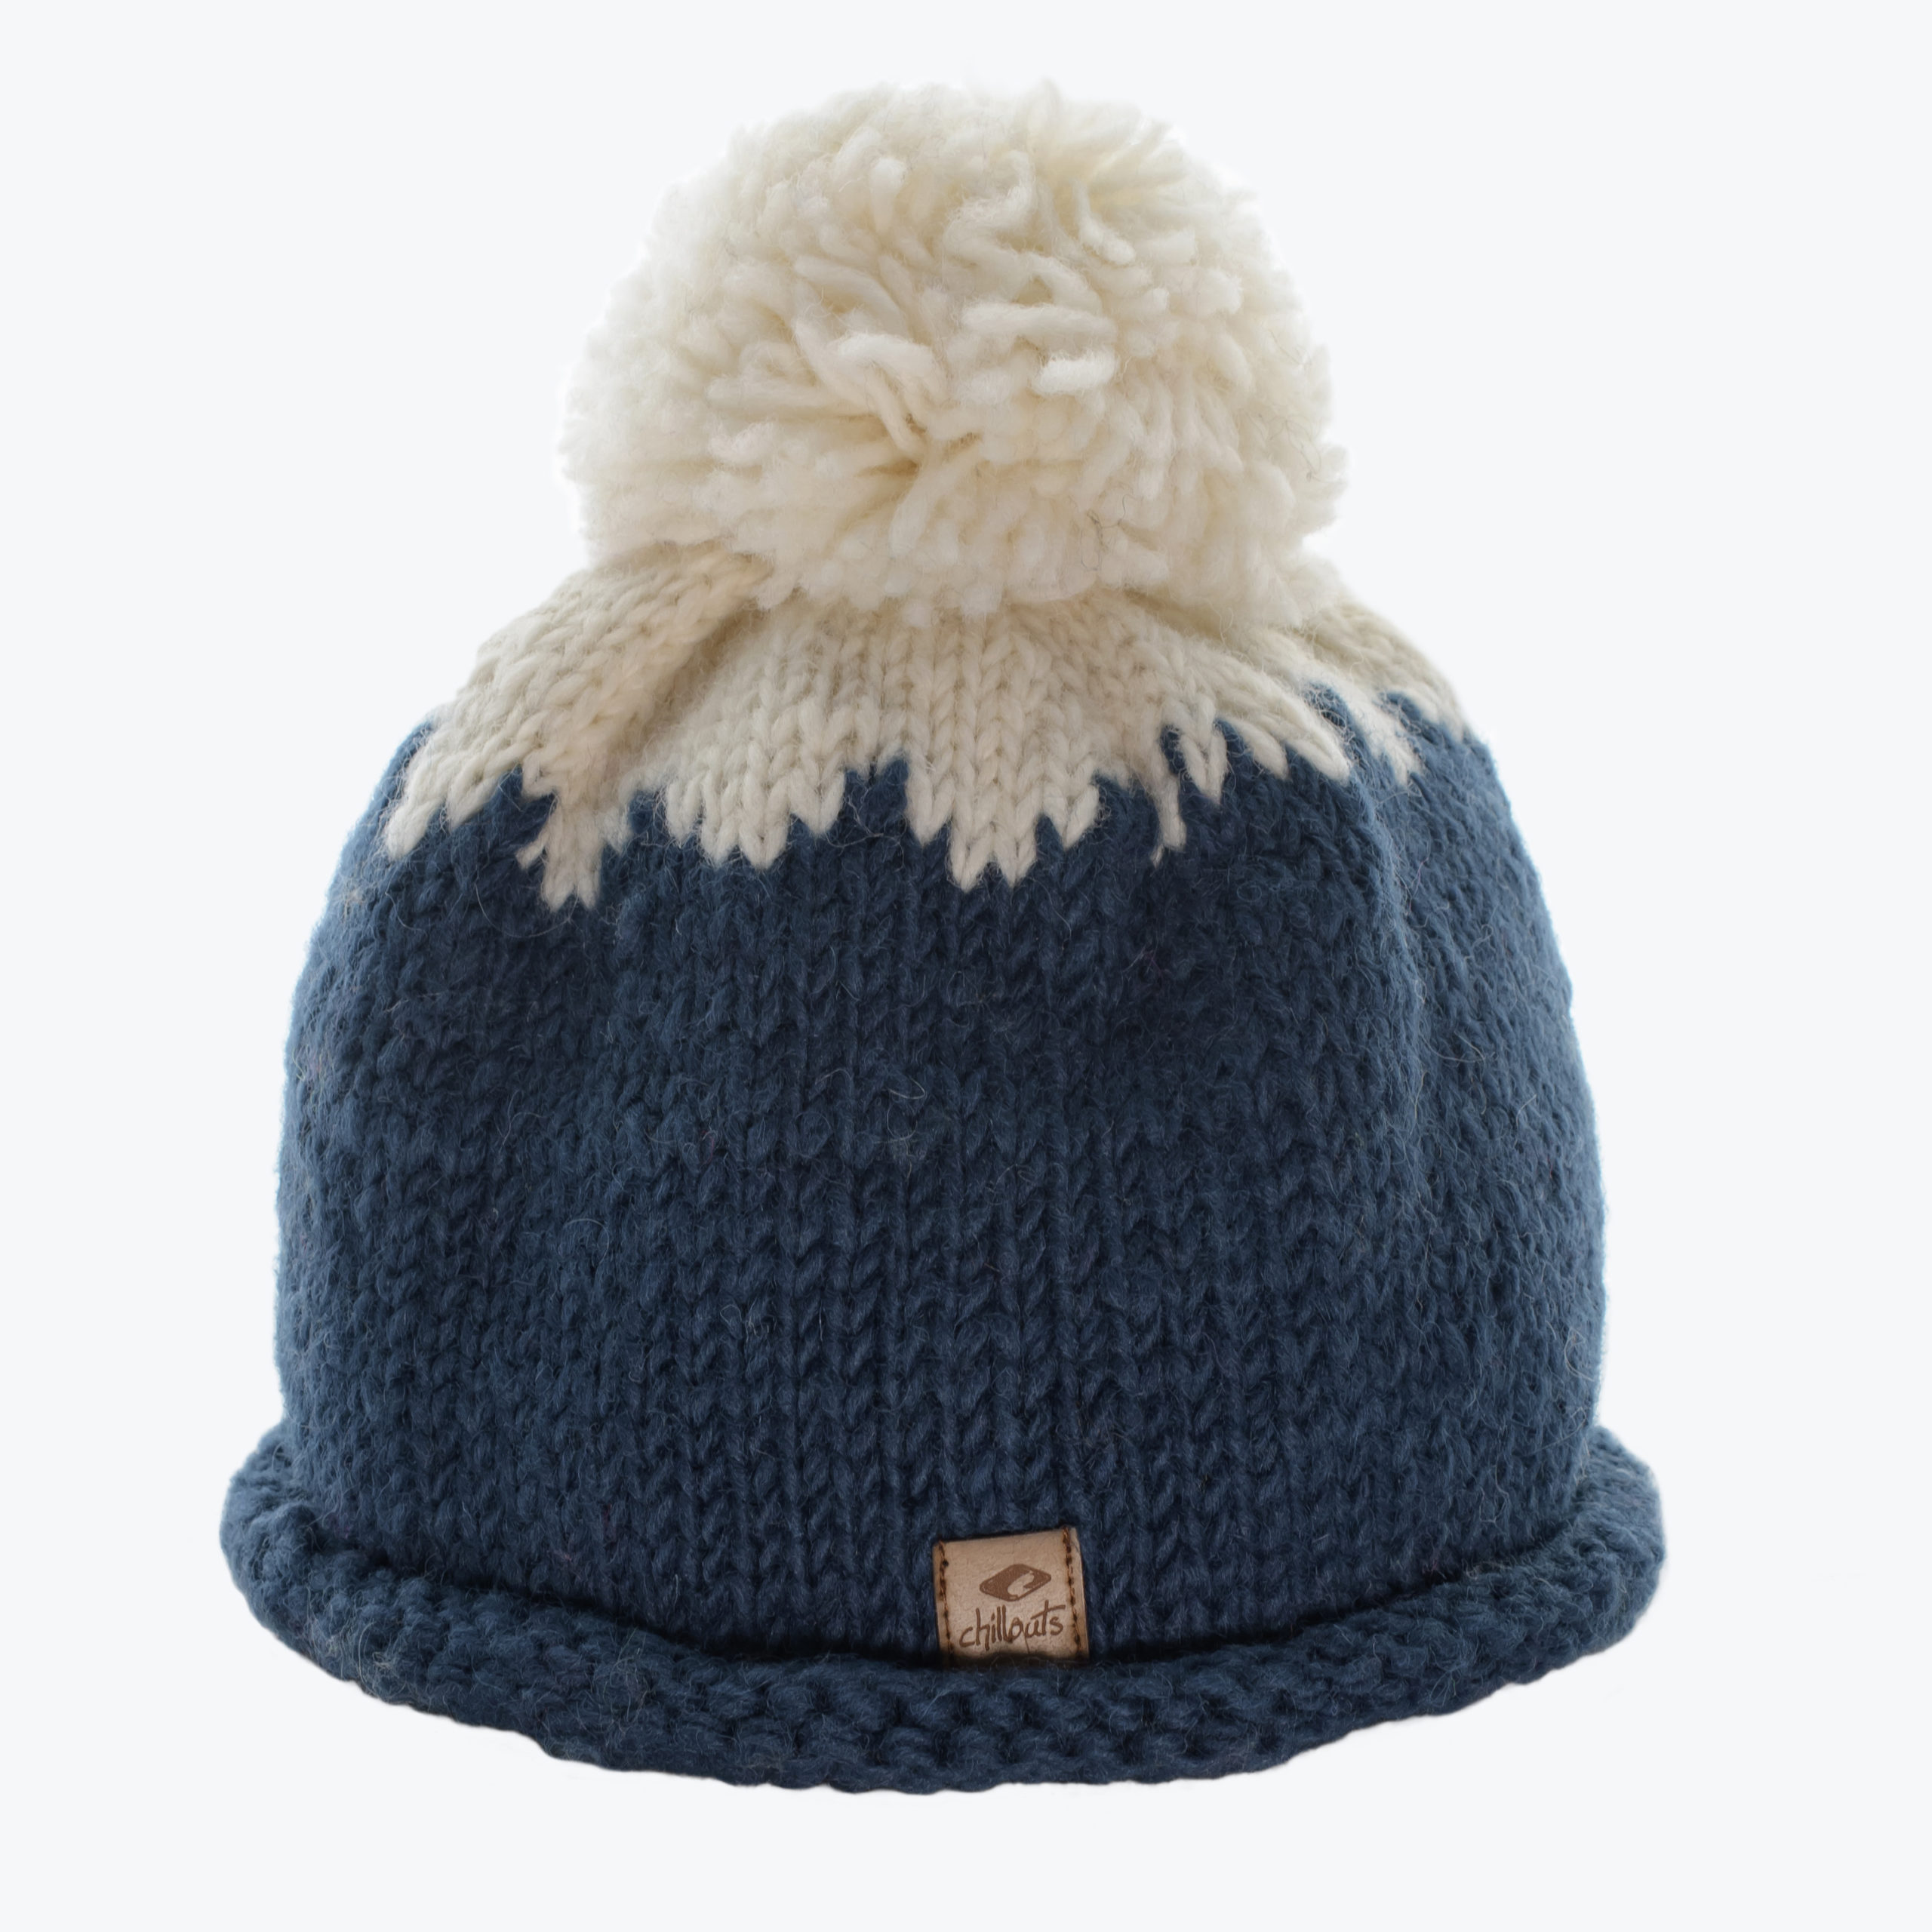 CHILLOUTS KID'S KNITTED BEANIE -BLUE